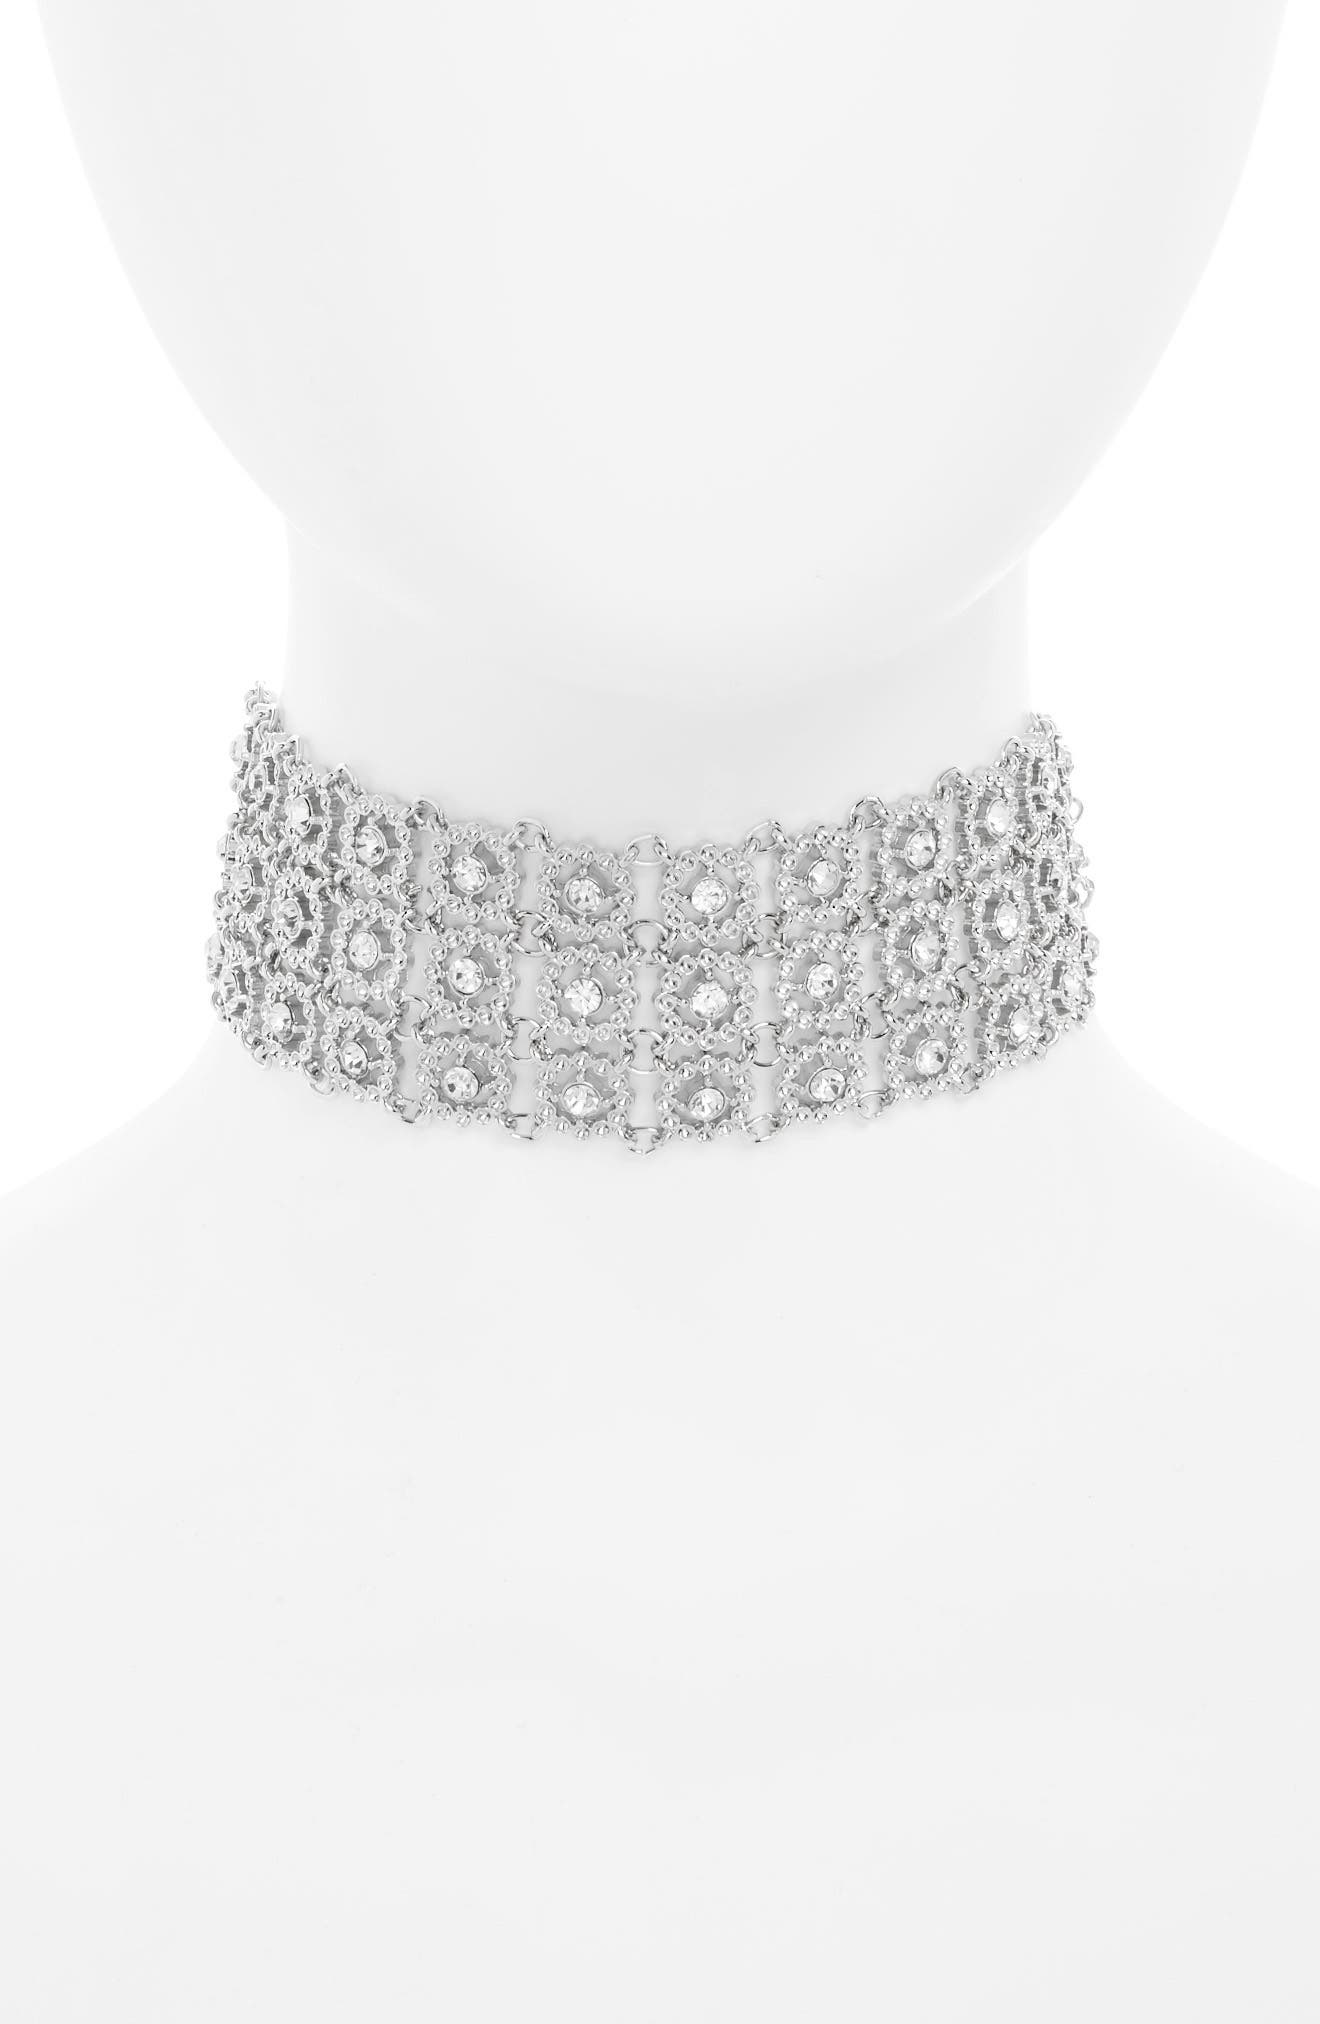 Crystal Flower Choker Necklace,                         Main,                         color, Silver